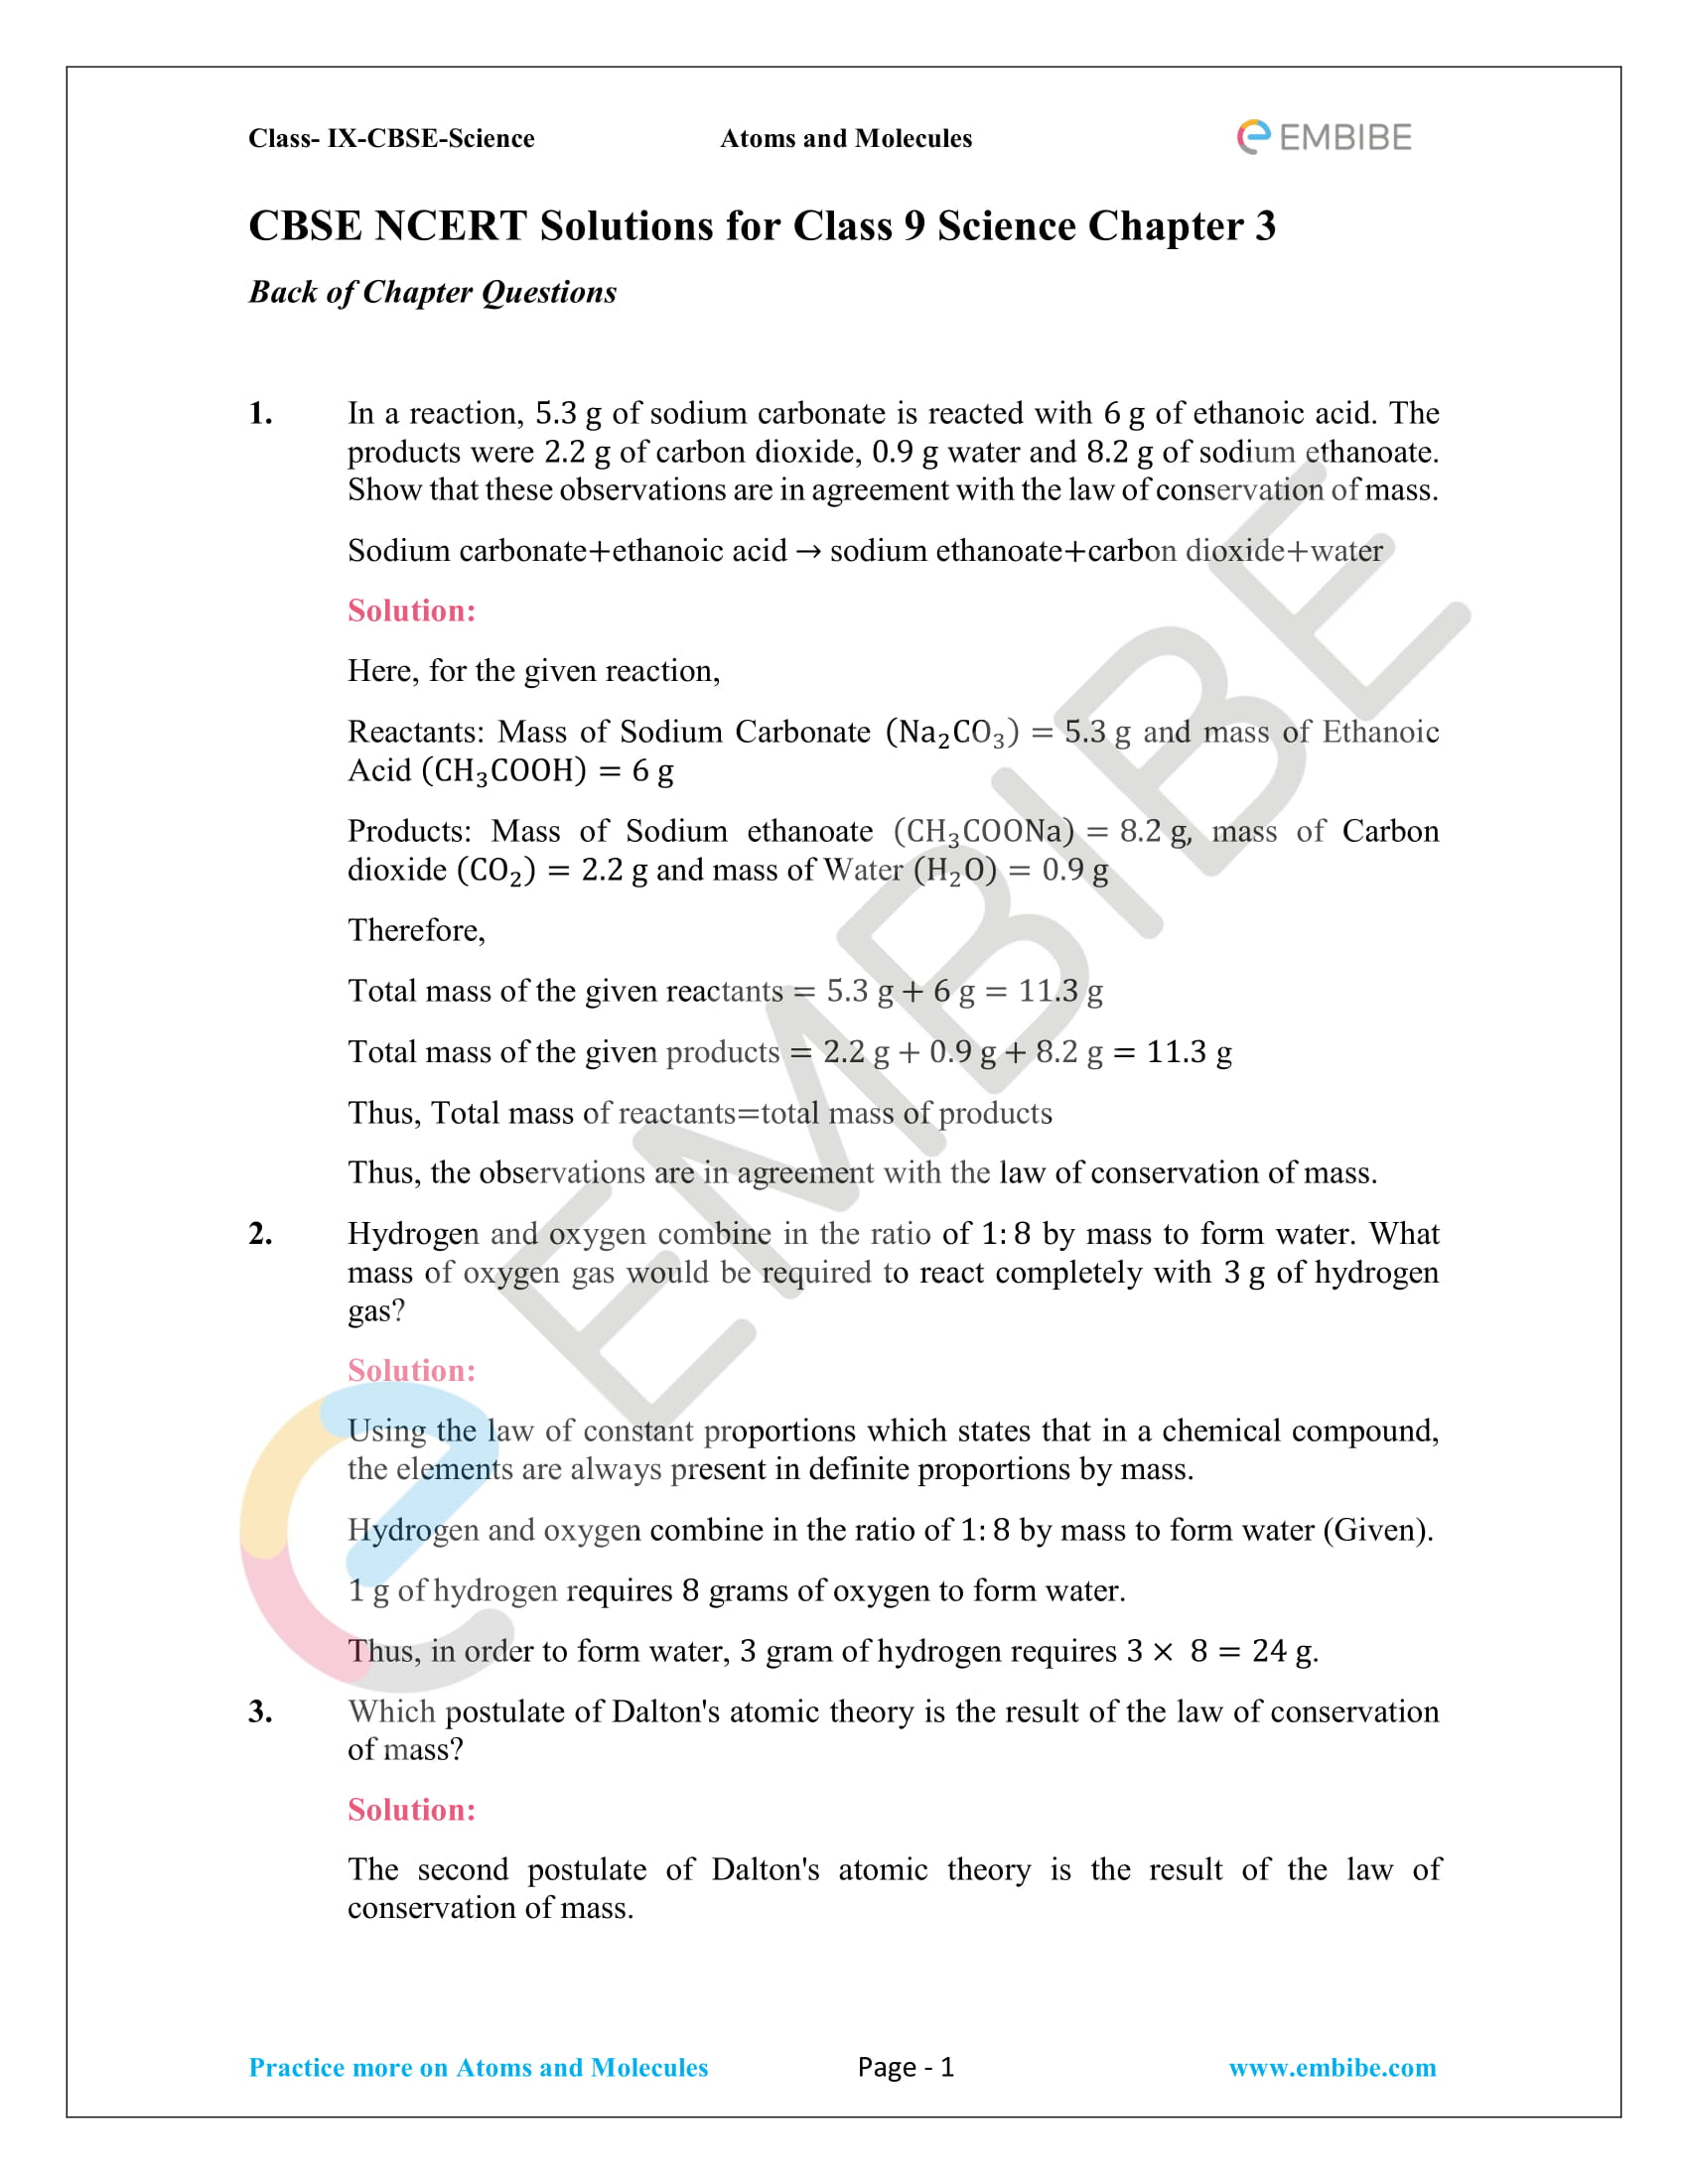 CBSE NCERT Solutions for Class 9 Science Chapter 3: Atoms